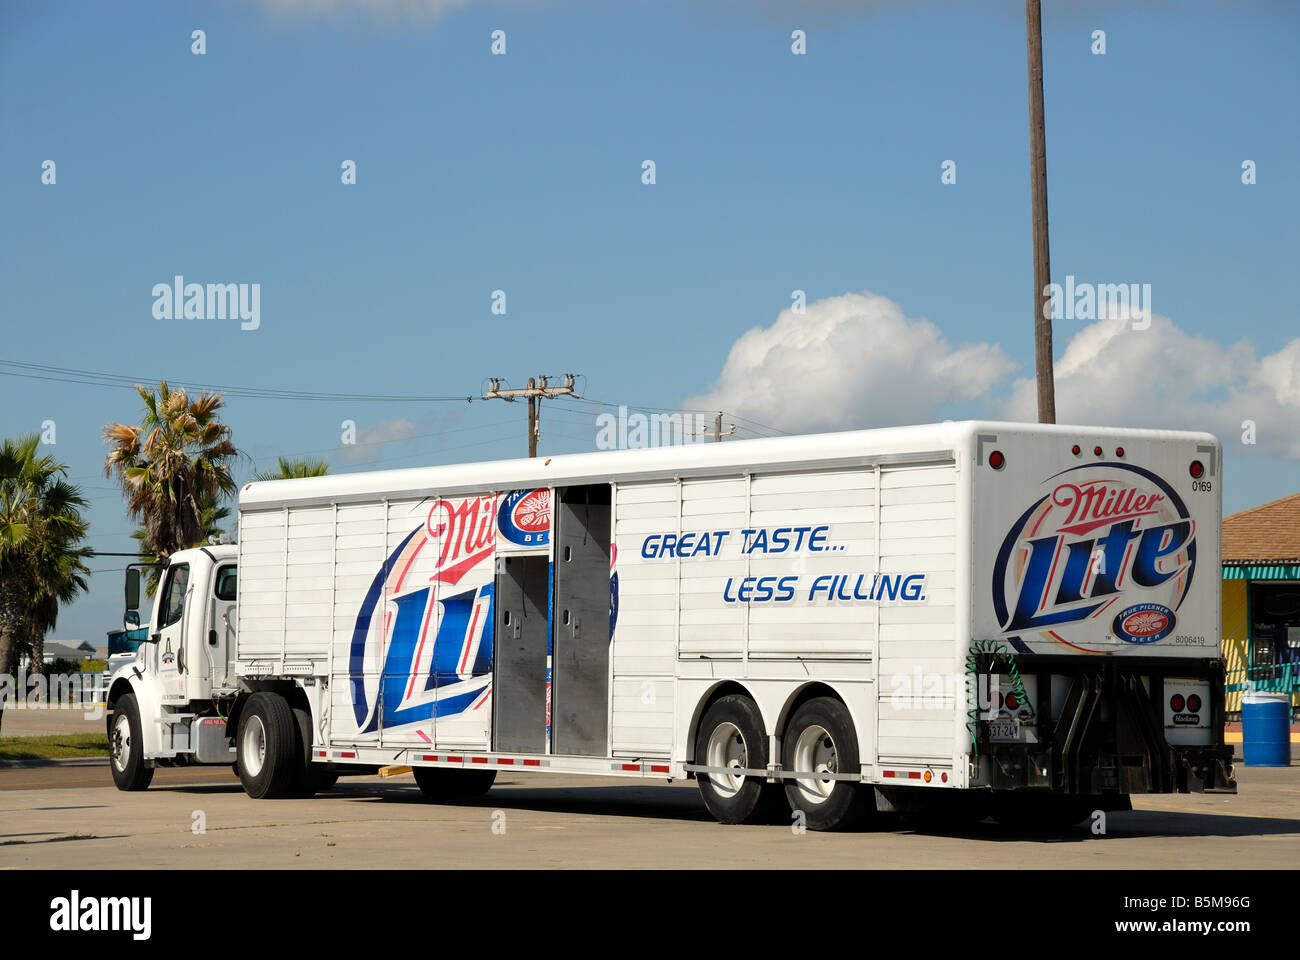 Miller Lite Truck in south Texas USA - Stock Image